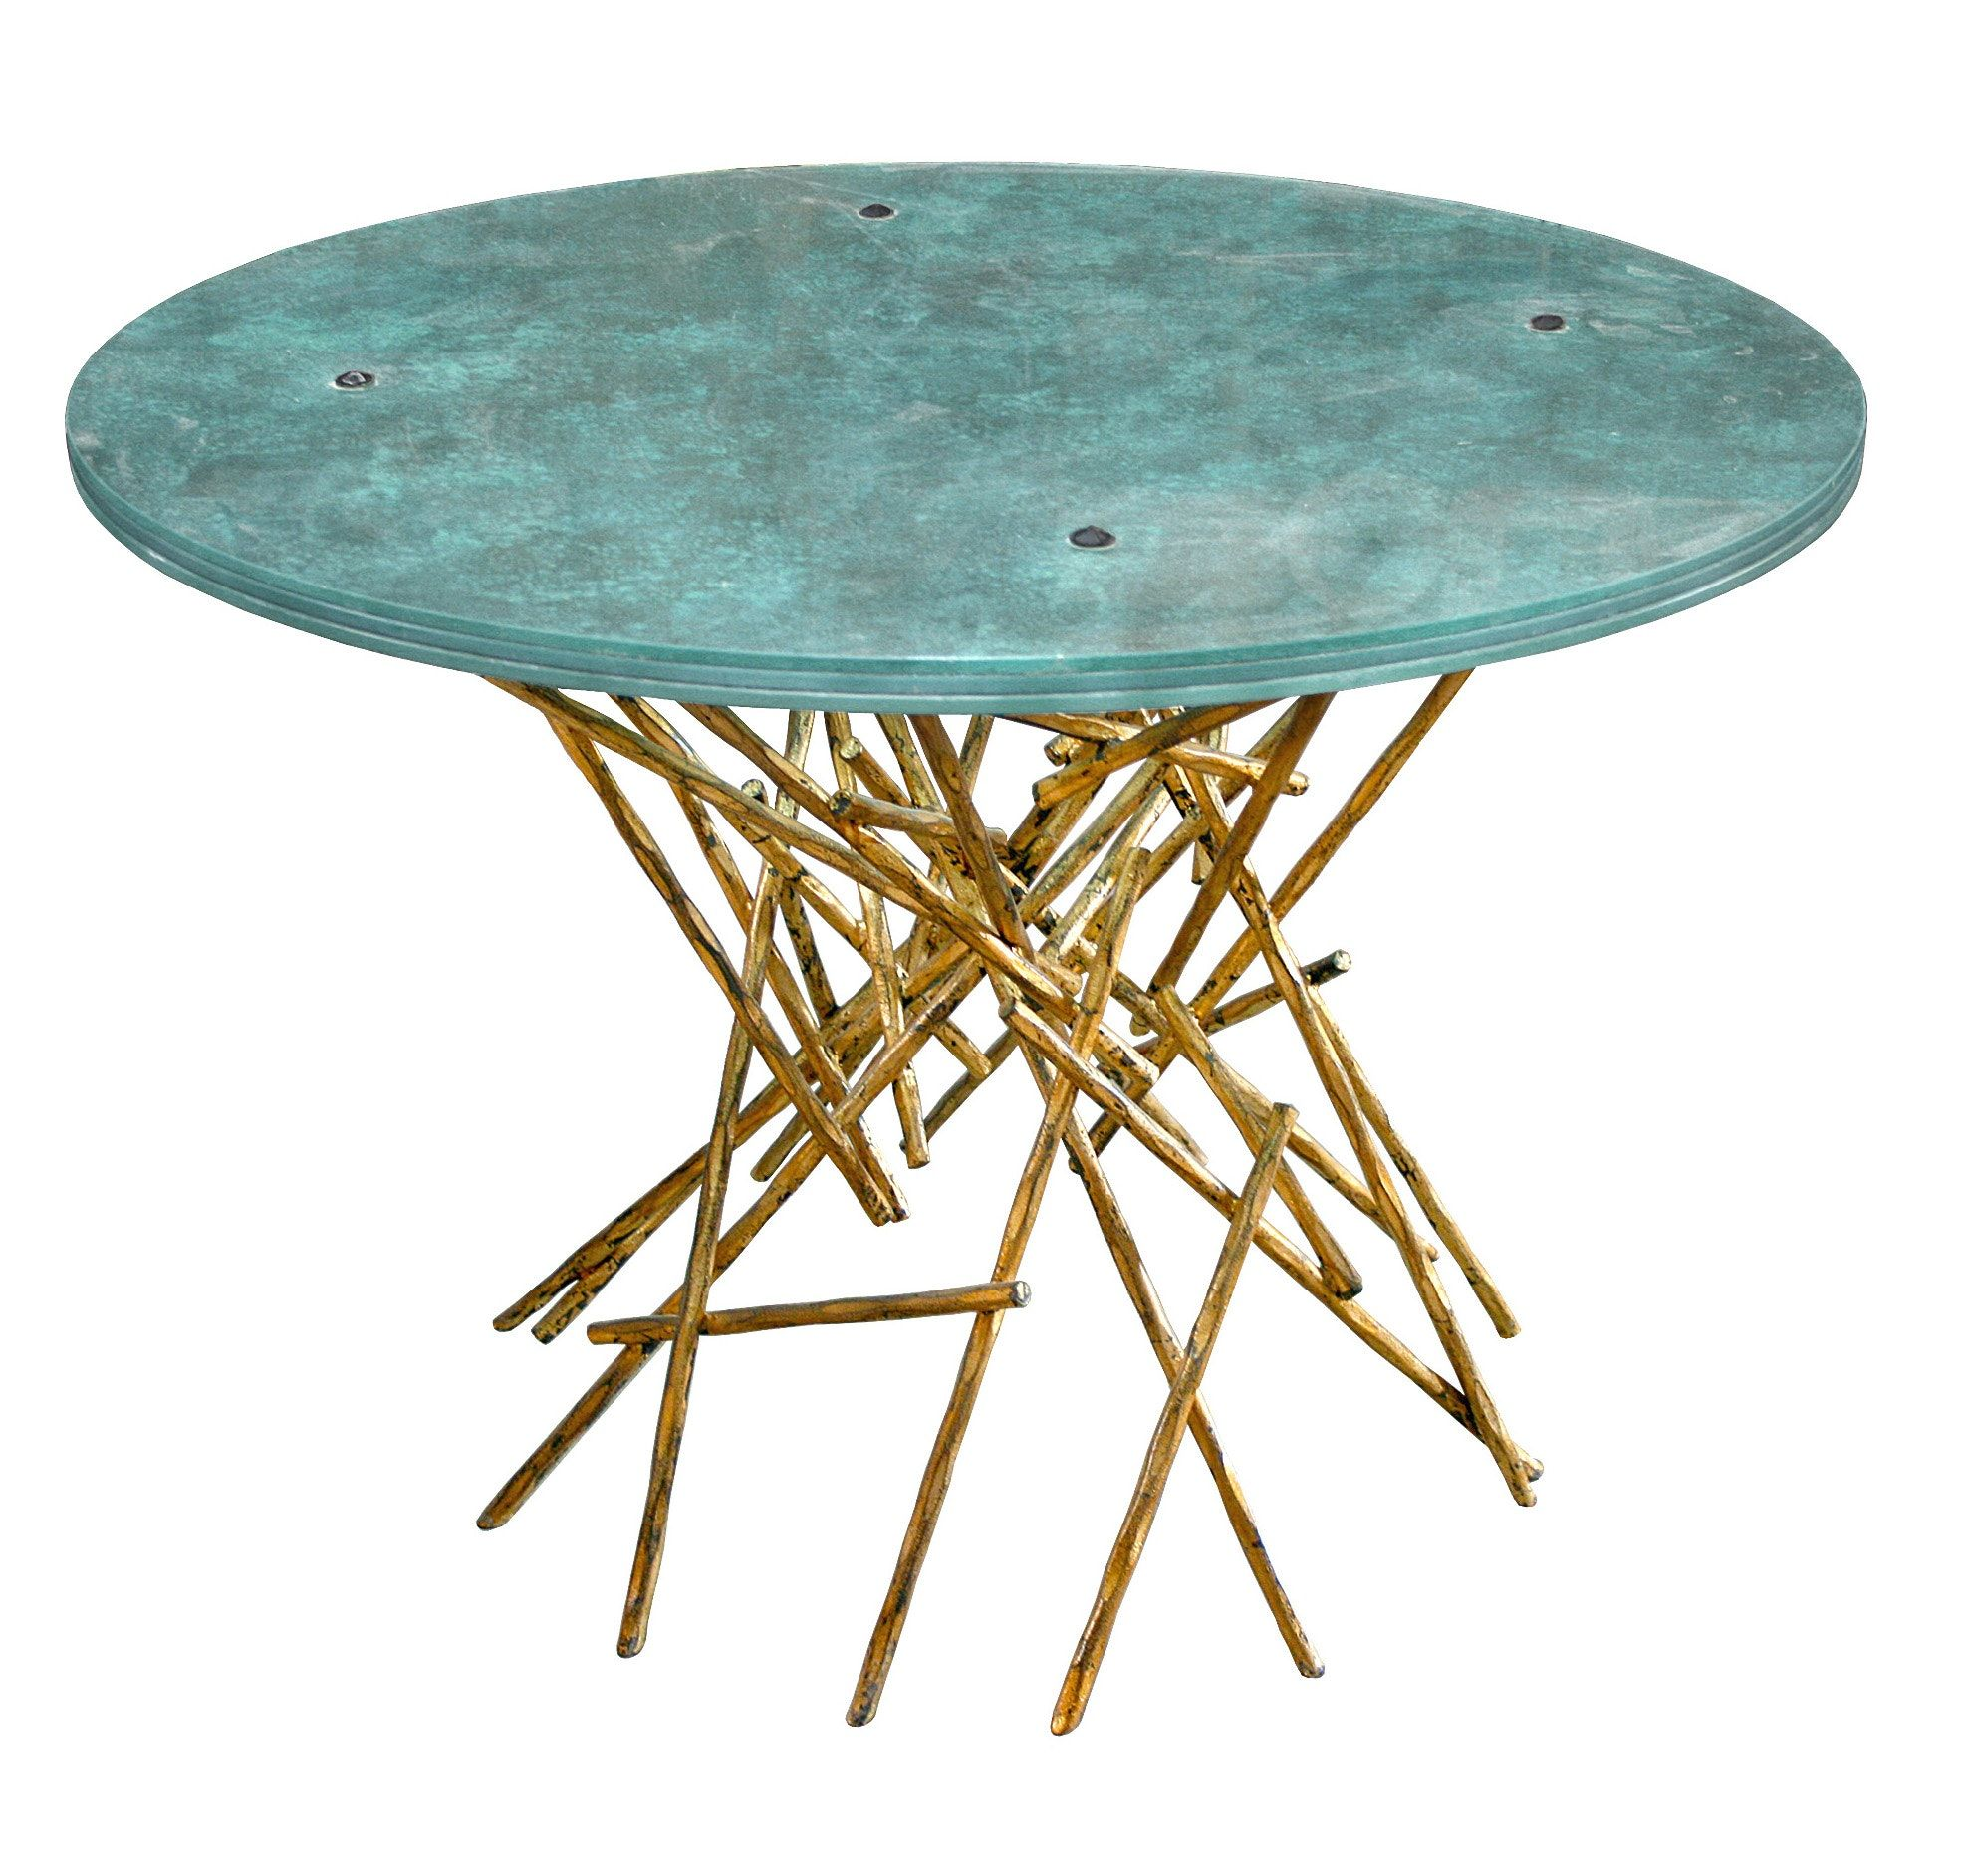 Pxe Center Table And End Table By Mclain Wiesand Custom Furniture Price On Request Center Table Furniture End Tables